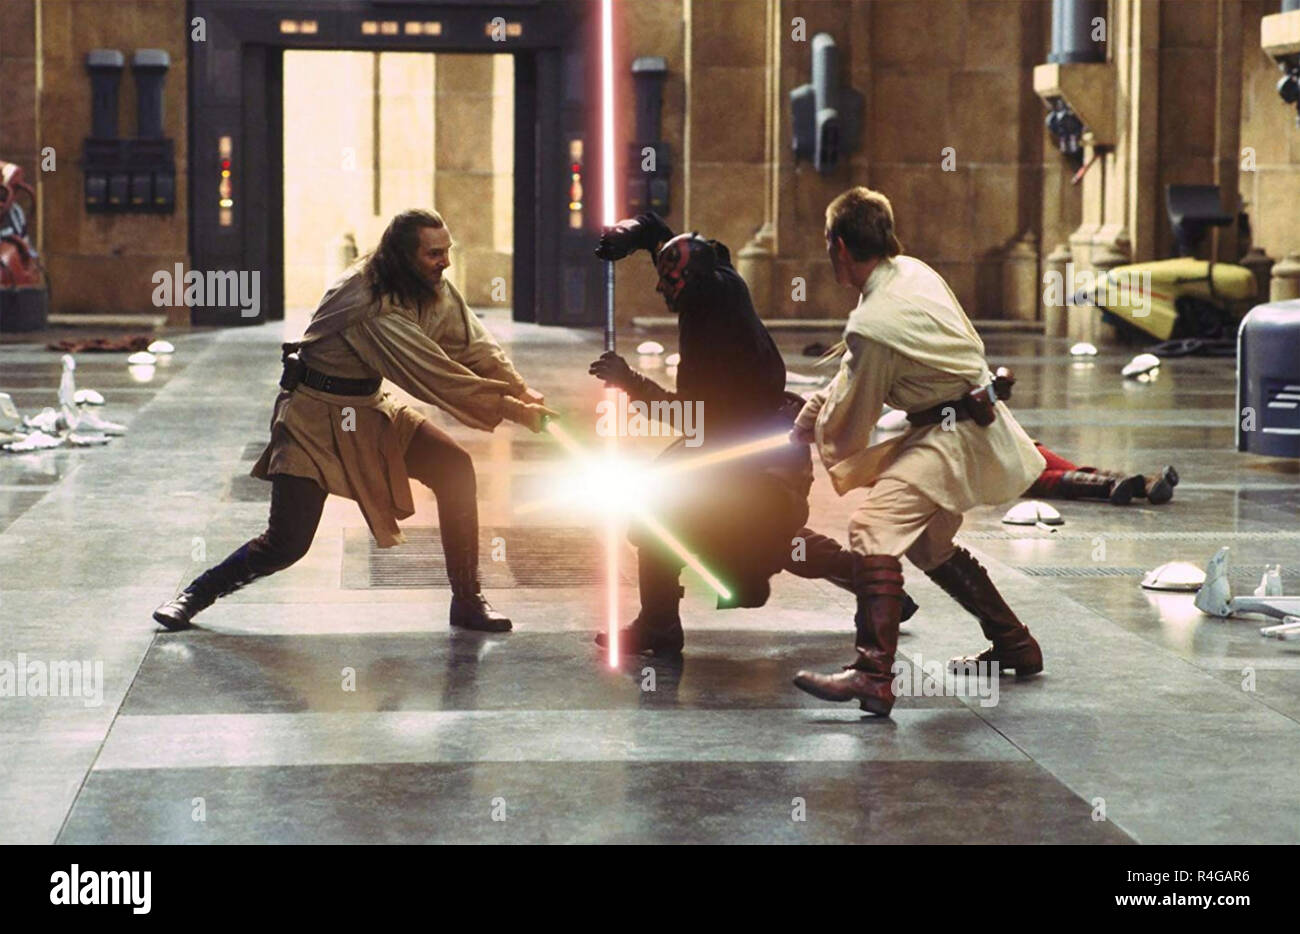 STAR WARS: EPISODE 1 - THE PHANTOM MENACE 1999 Lucasfilm production with from left: Liam Neeson,  Ray Park, Ewan McGregor - Stock Image